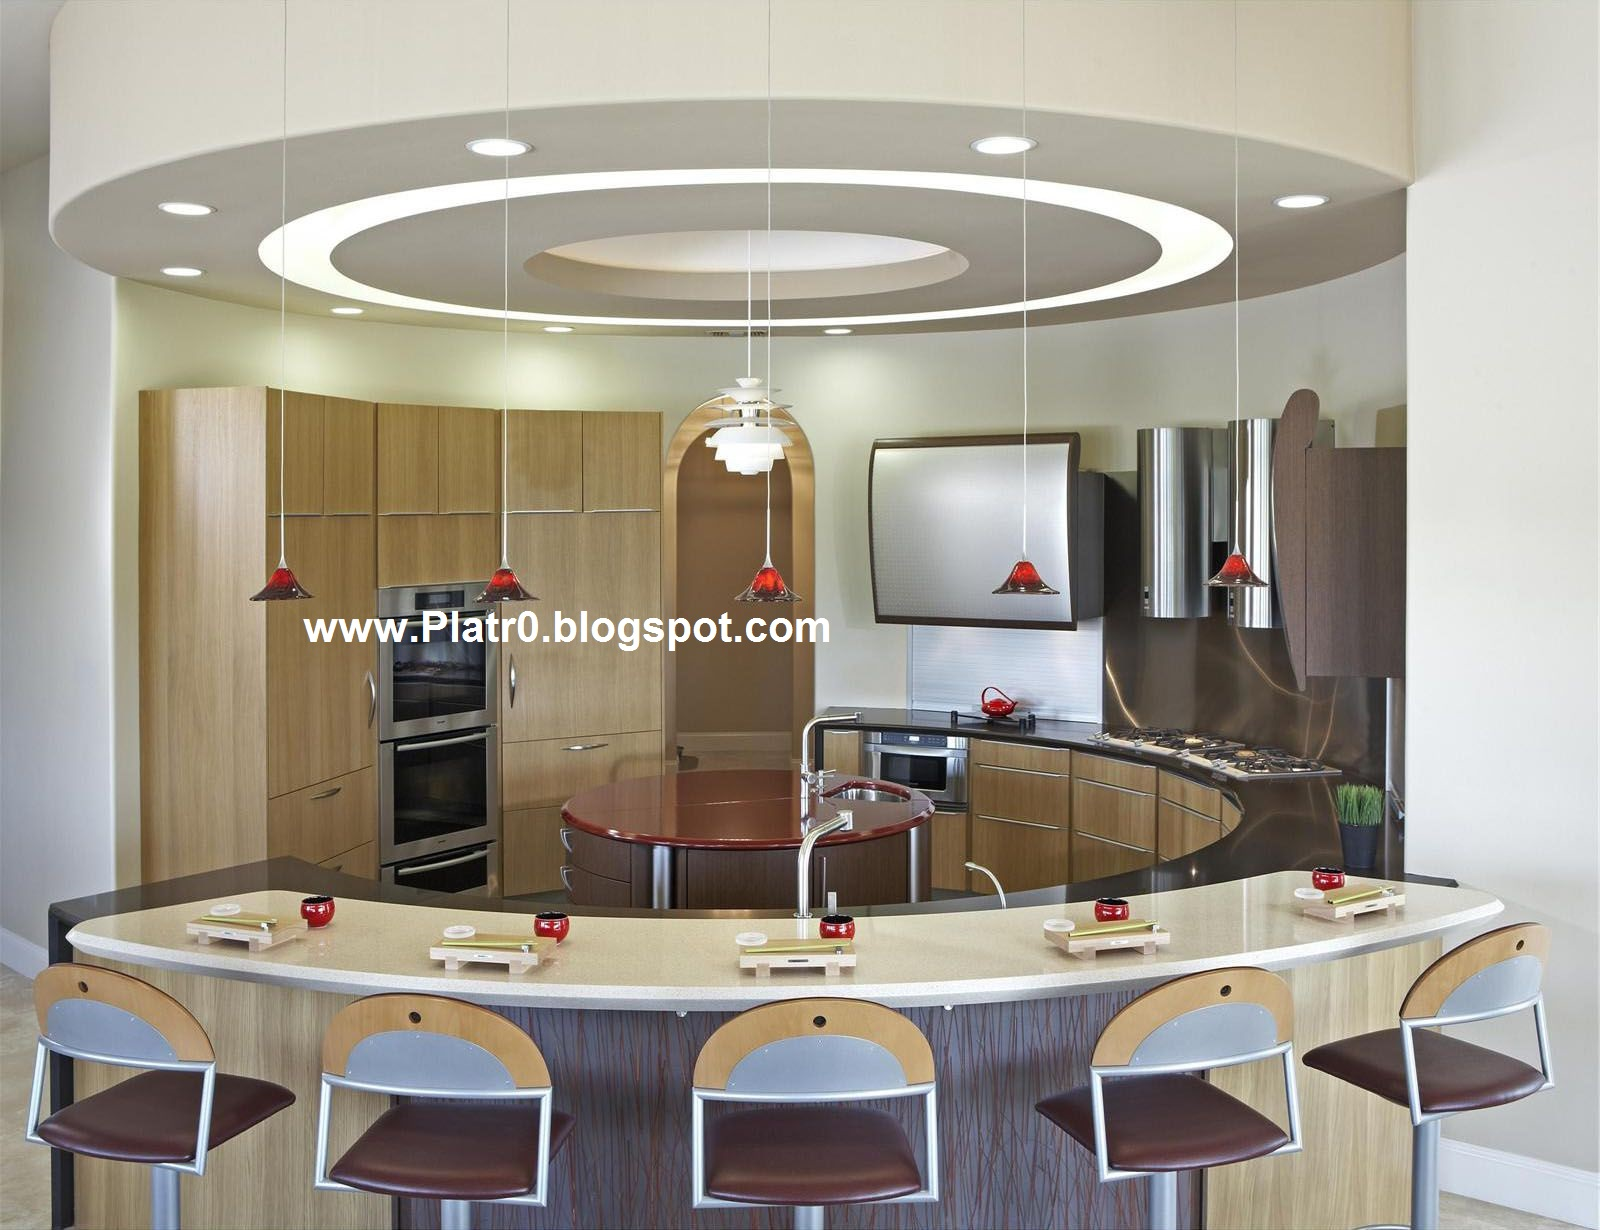 Idees de plafond cuisine moderne for Decoration cuisine moderne